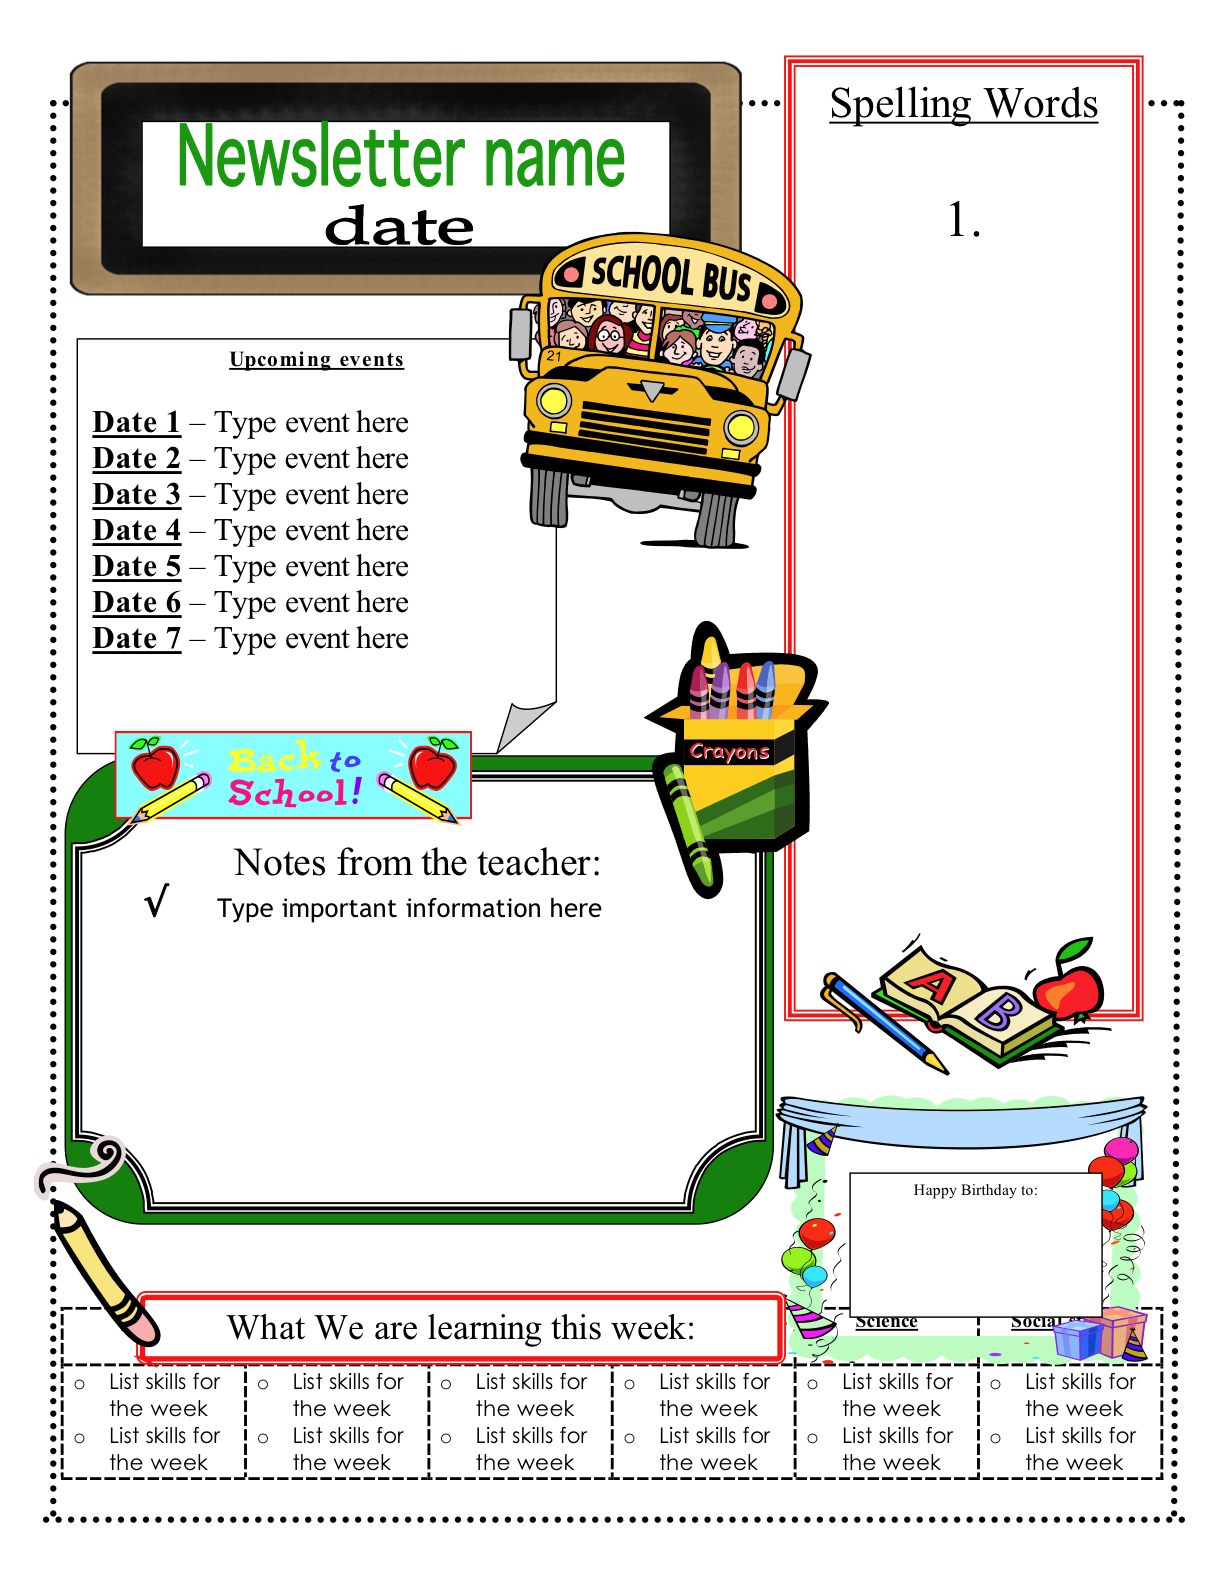 Homework Passes Black And White Market. Work - Show All - Whbm - Free Printable Homework Pass Coupon